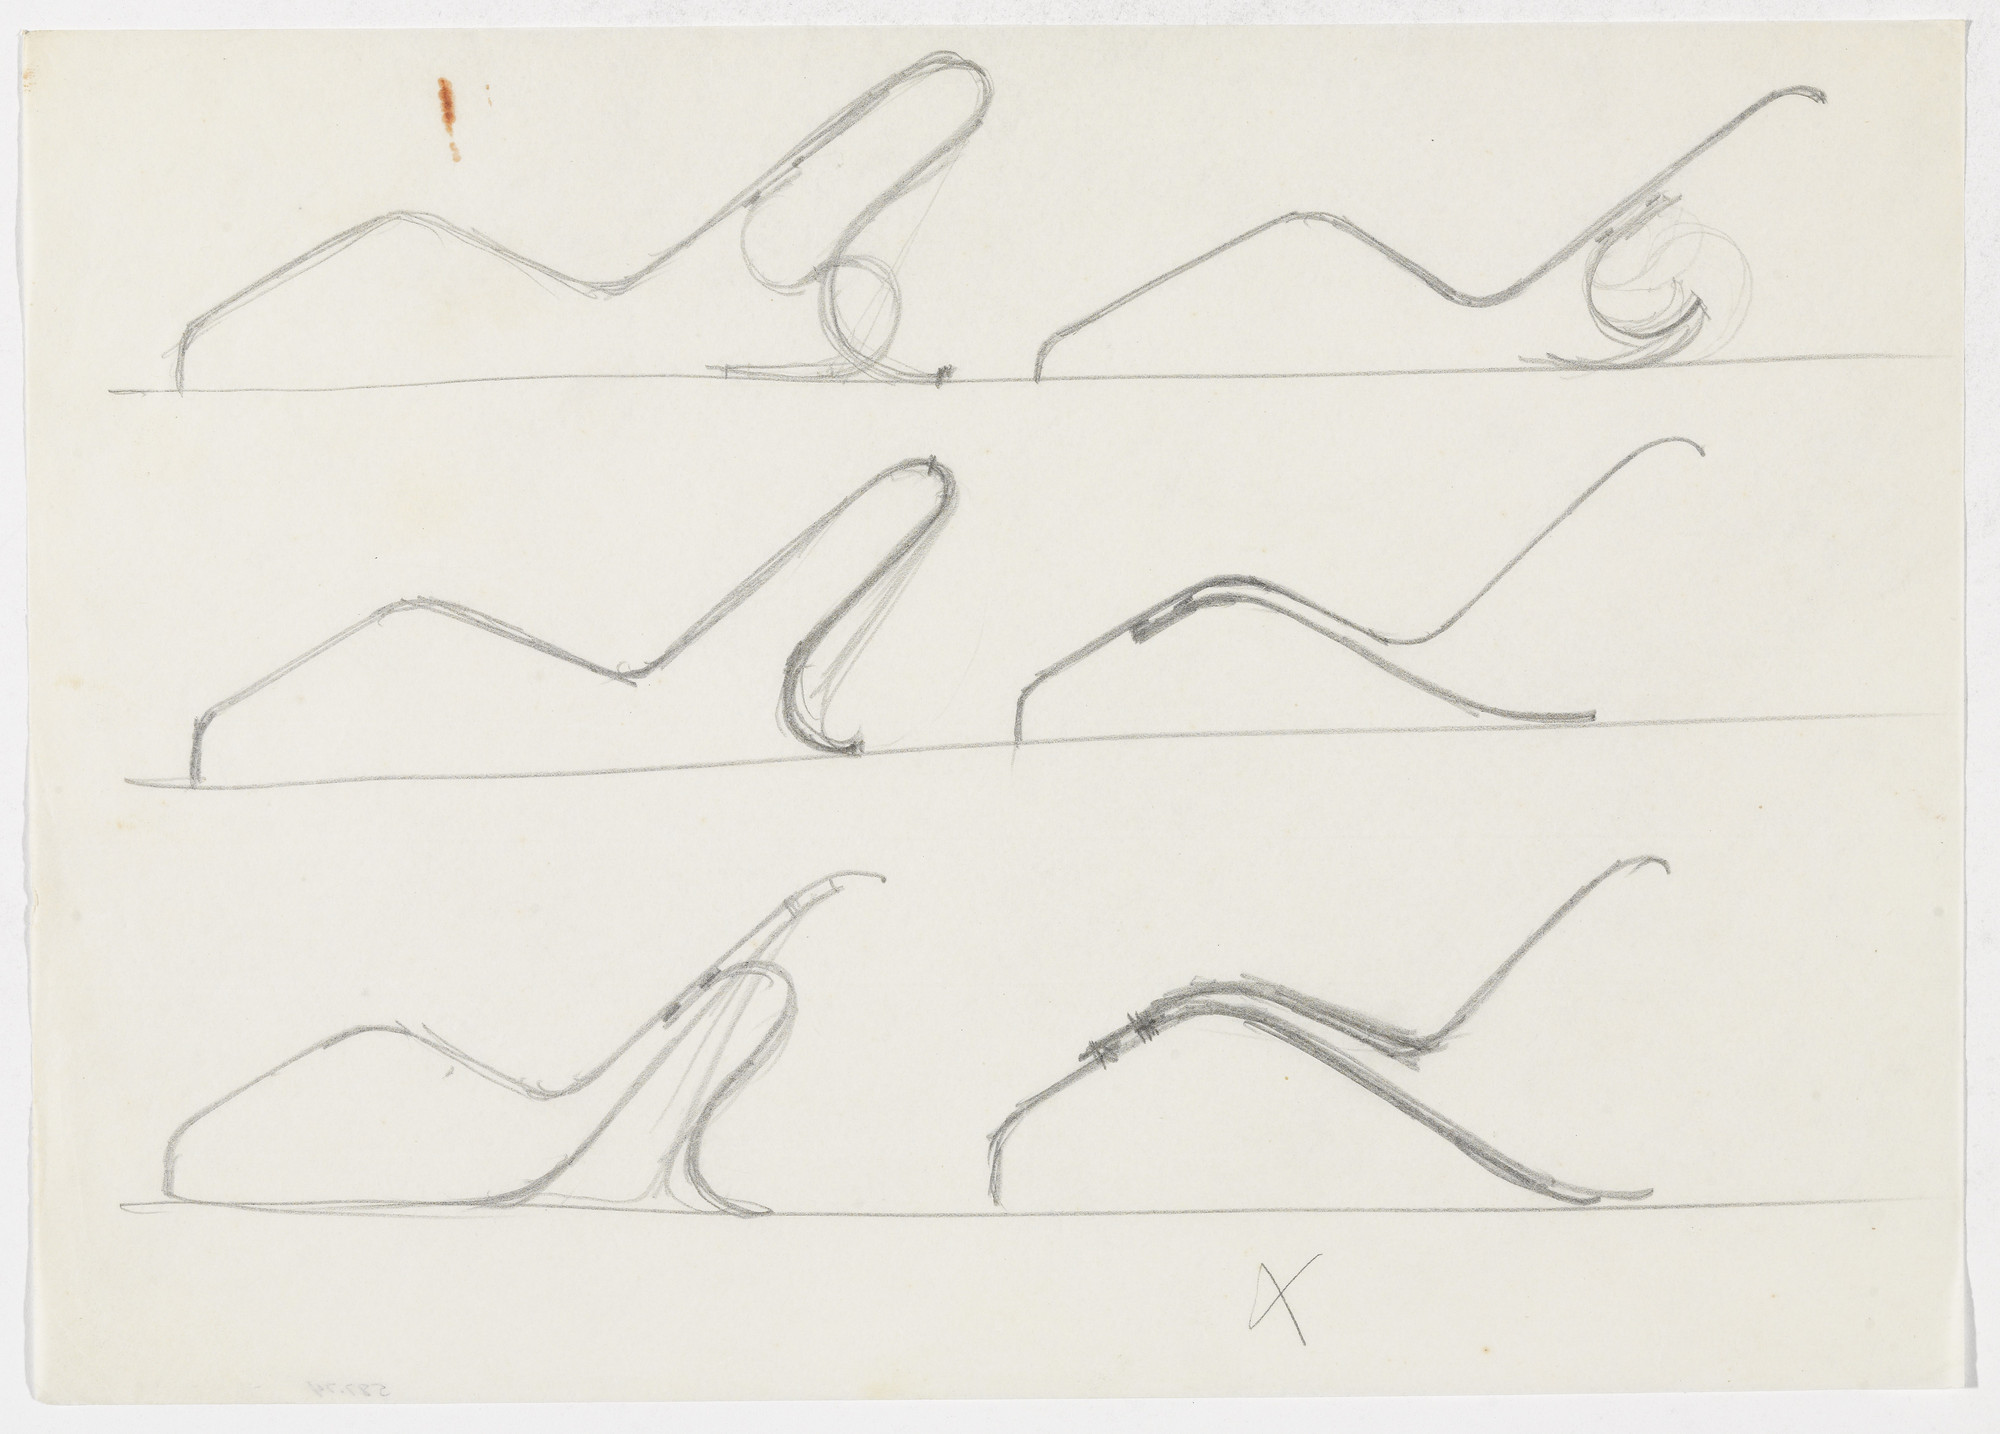 Ludwig Mies van der Rohe. Reclining Chair without Arms (Six elevation sketches). 1931-1932